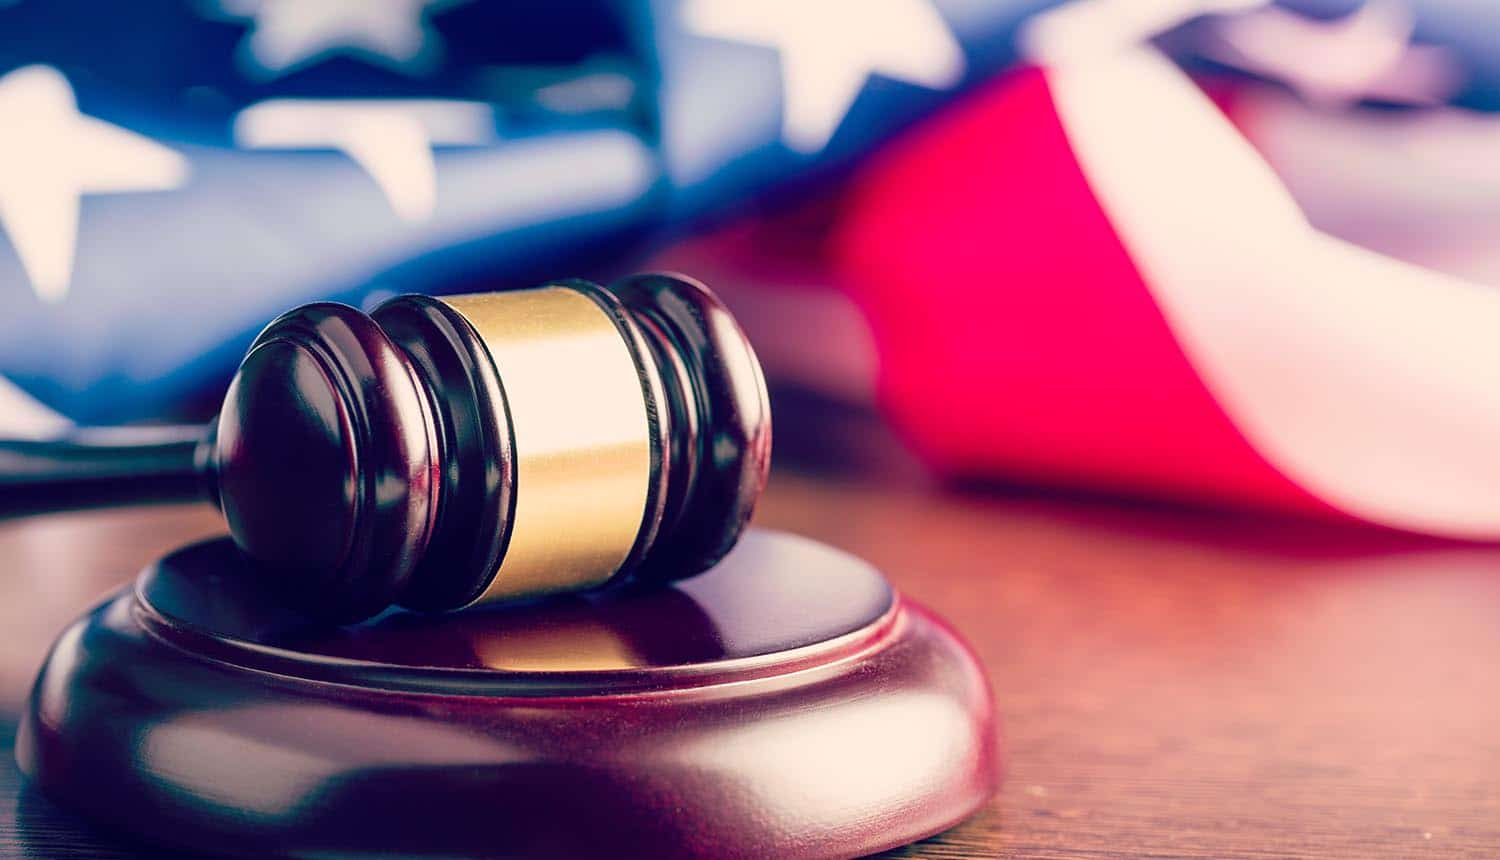 Judge gavel and background with U.S. flag showing proposed data privacy bill